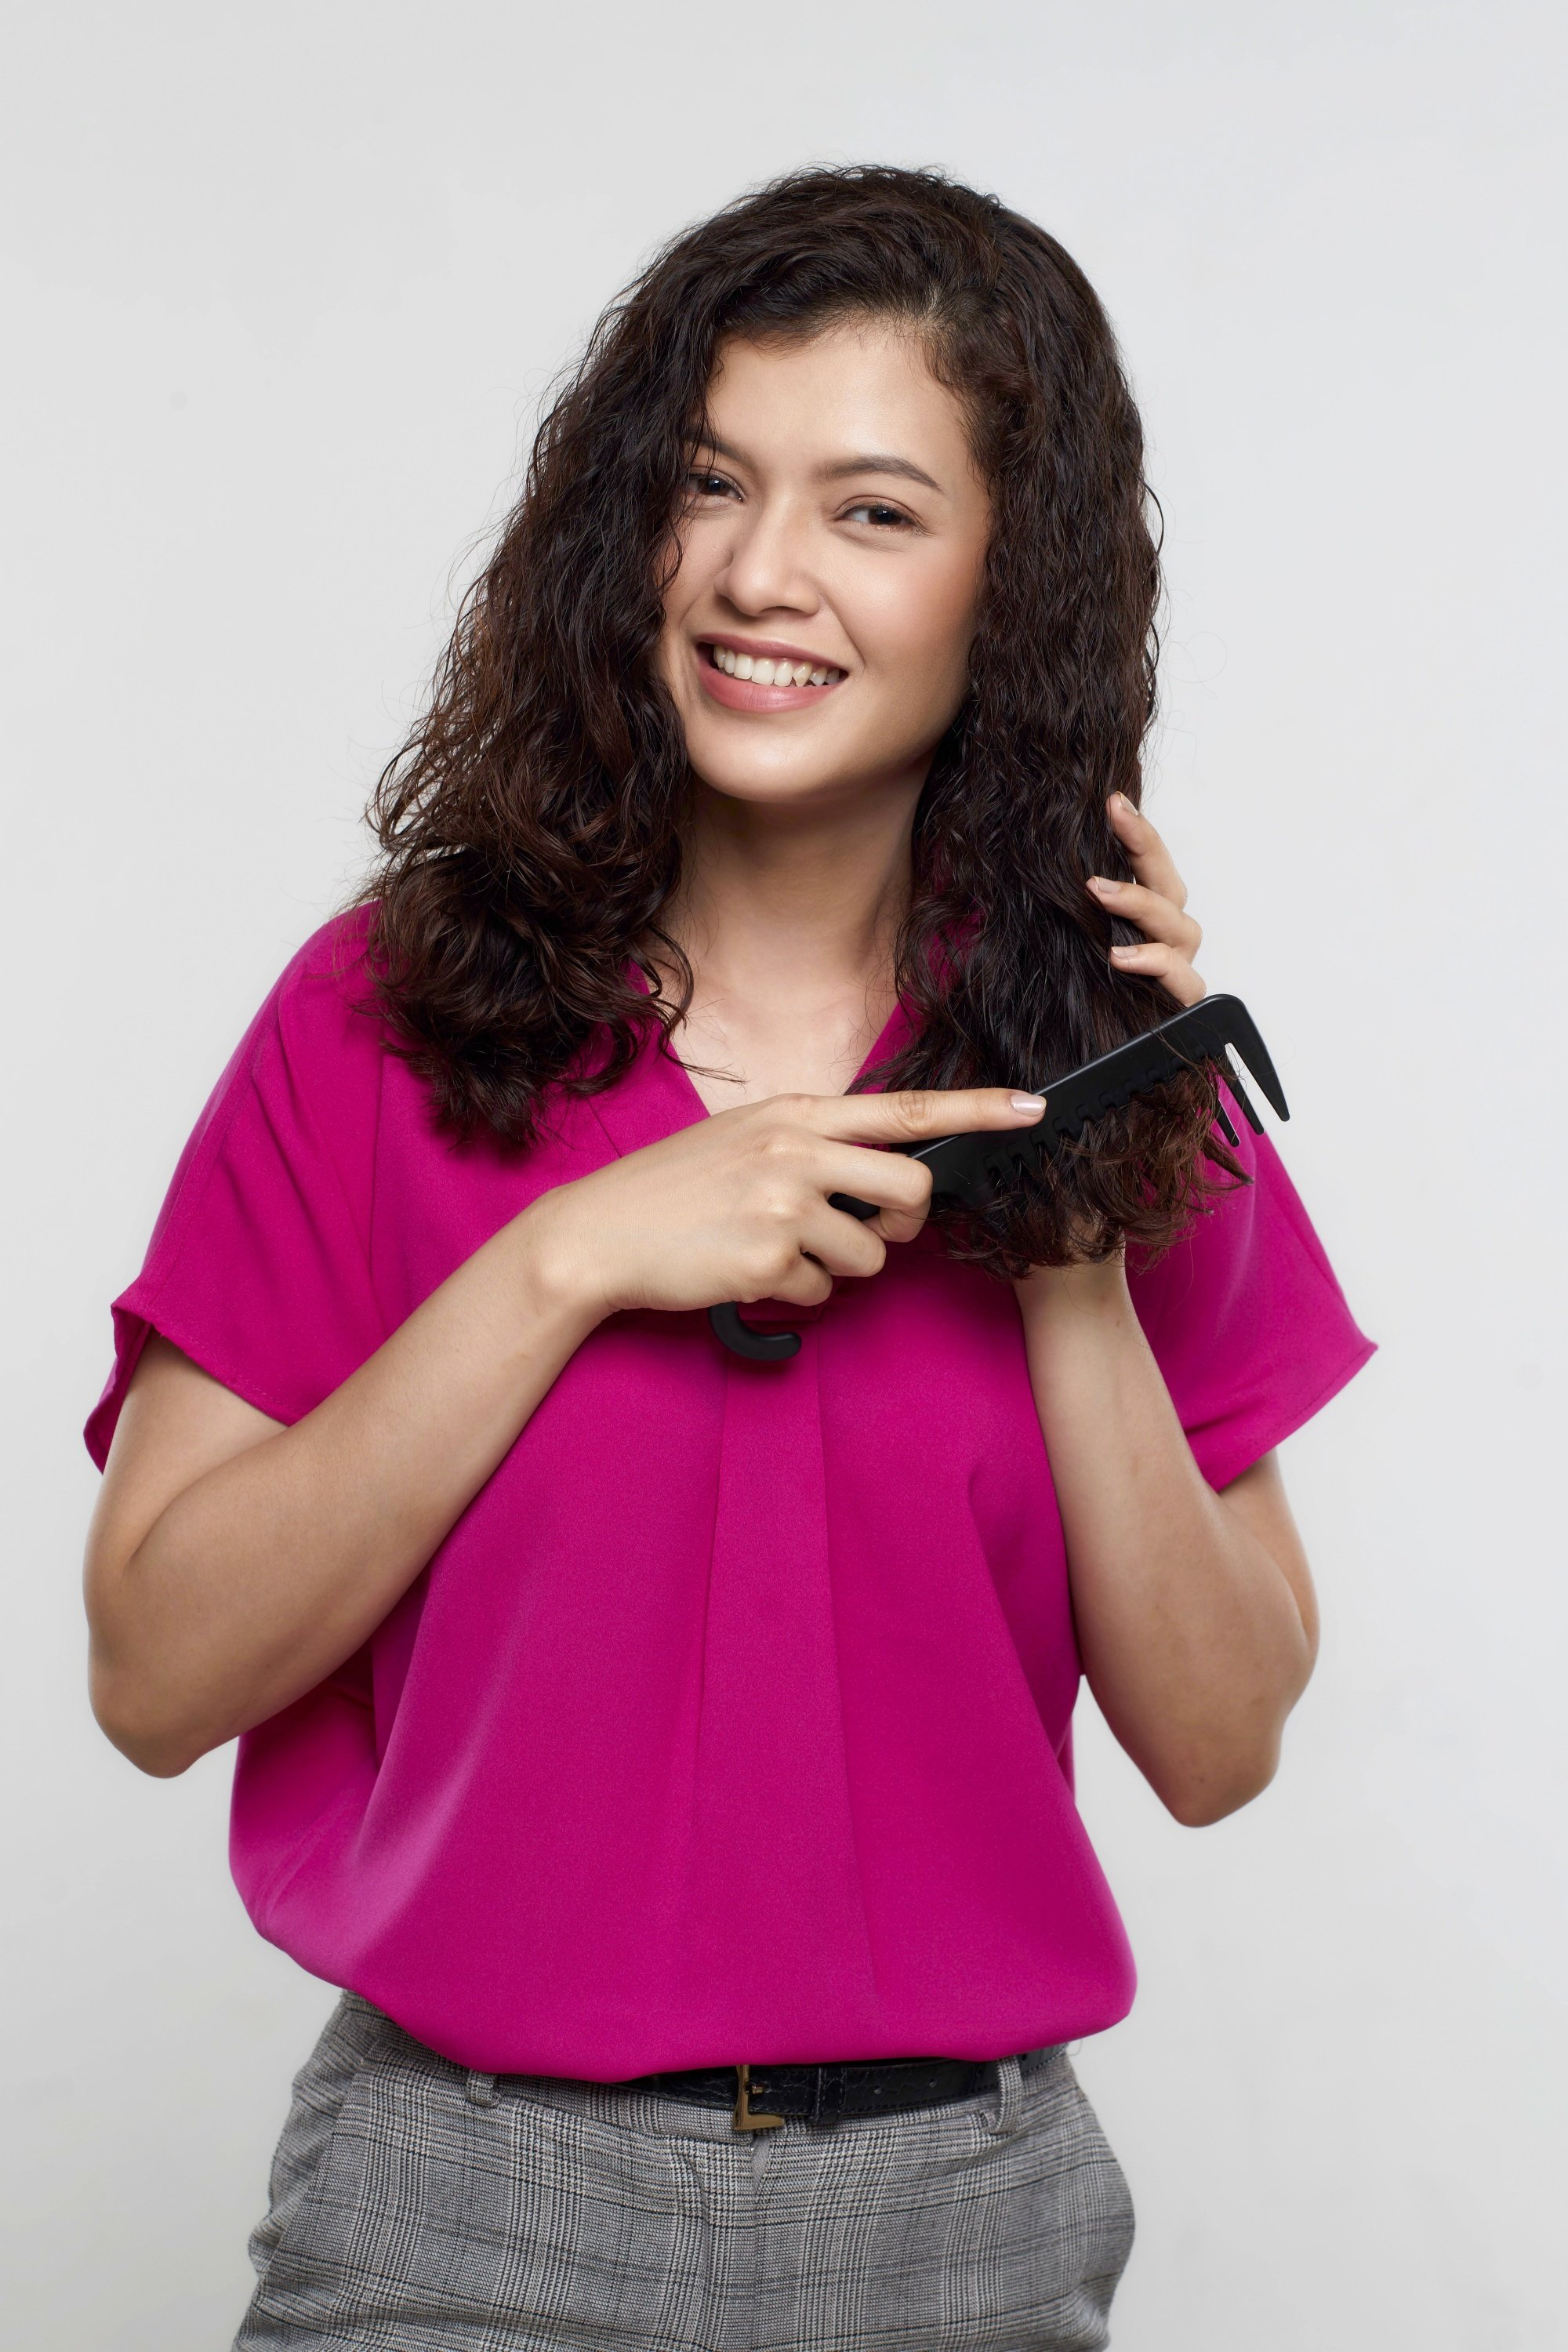 Brush your hair the right way: Asian woman combing her long dark brown curly hair